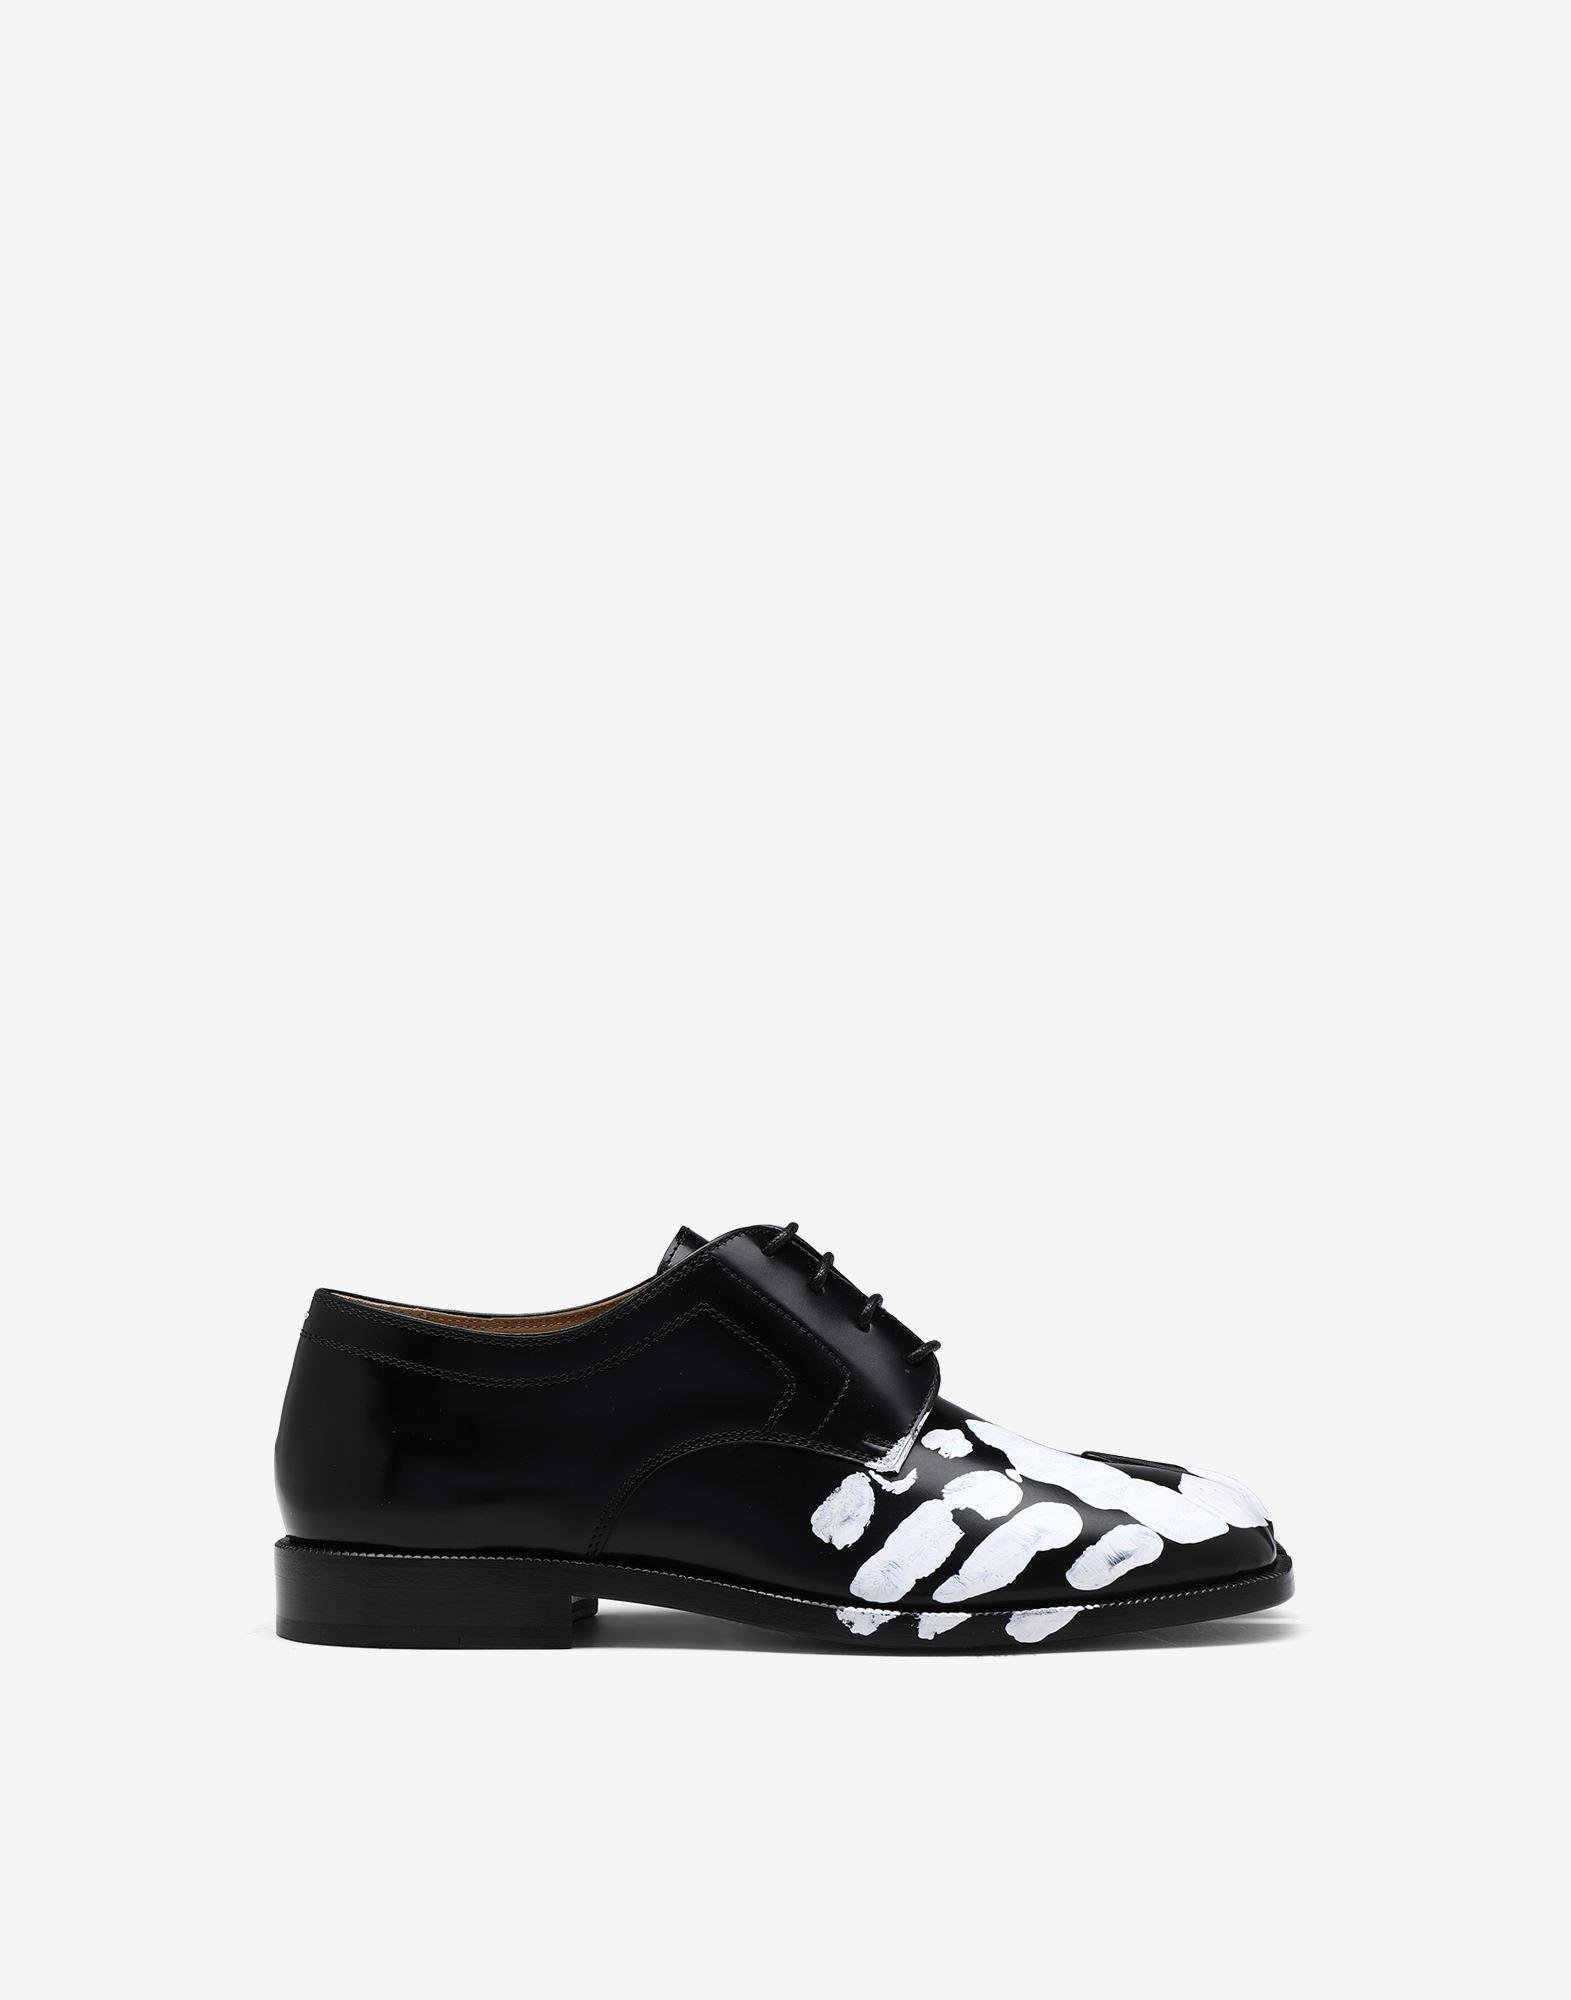 Tabi hand-painted lace-up shoes